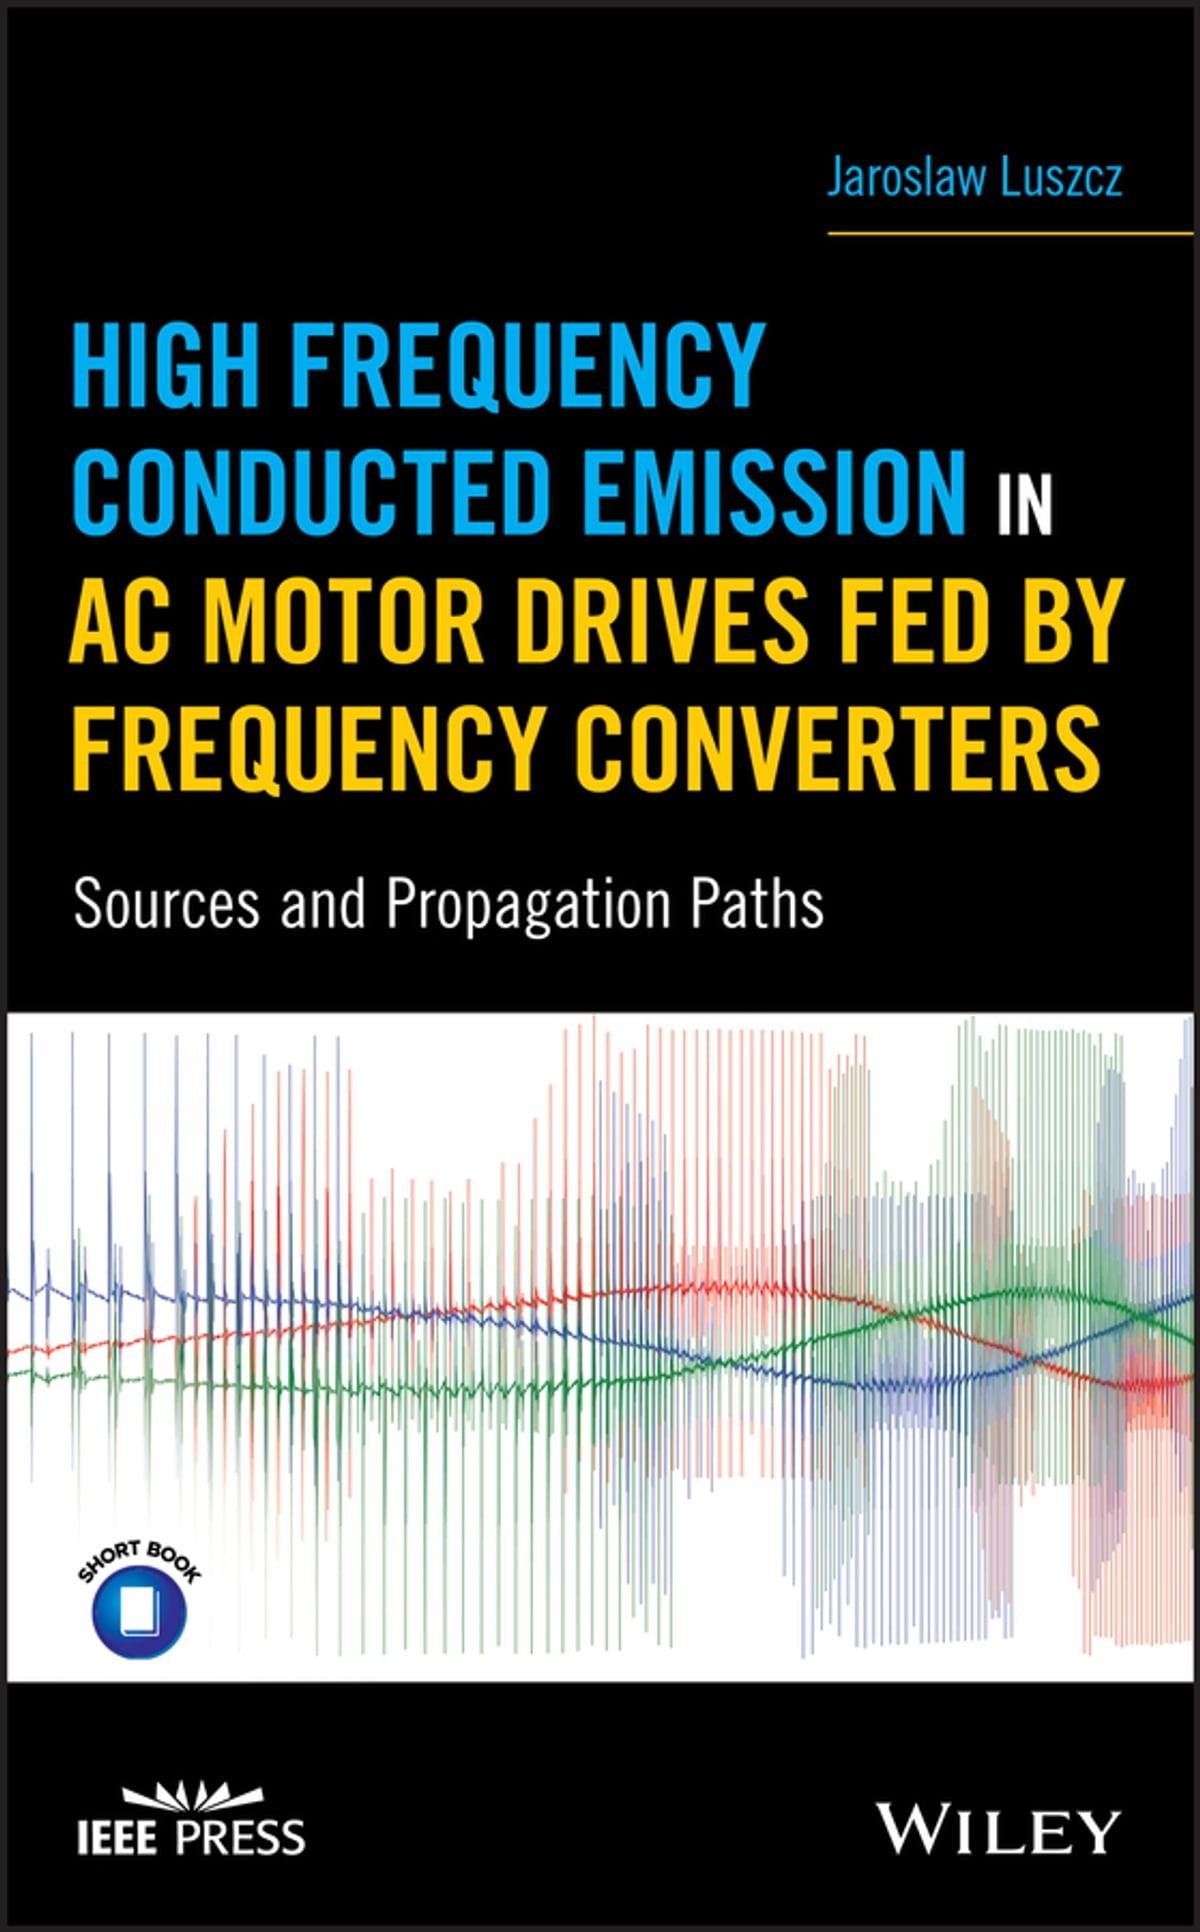 Libro Motores Macmillan High Frequency Conducted Emission In Ac Motor Drives Fed By Frequency Converters Ebook By Jaroslaw Luszcz Rakuten Kobo